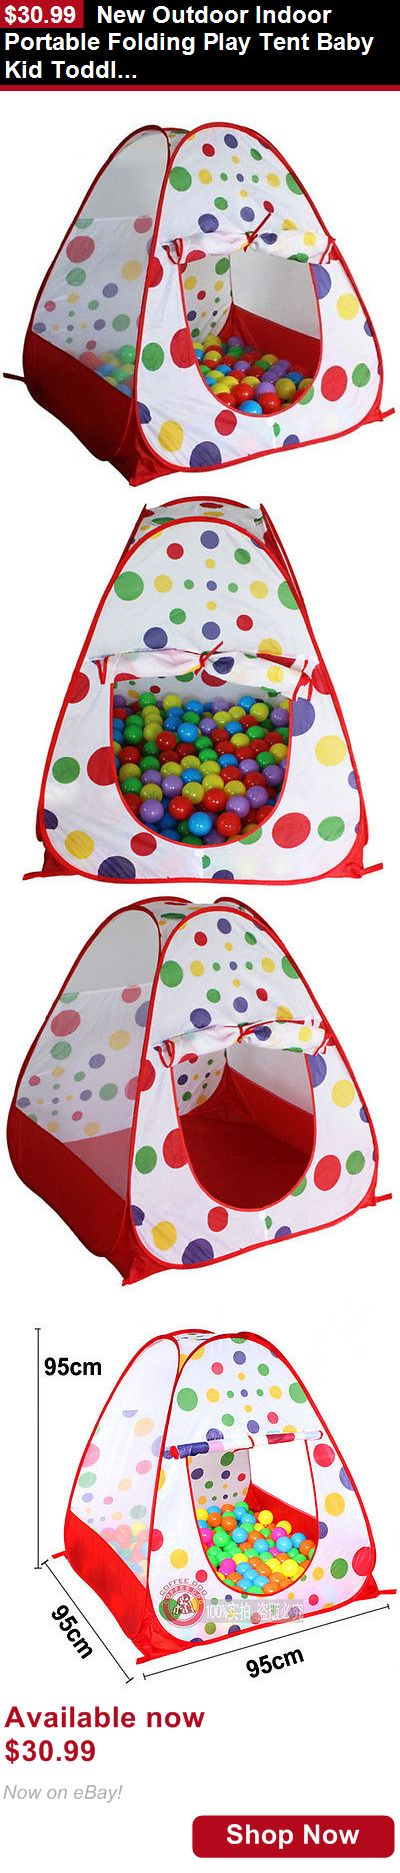 Baby play shades and tents: New Outdoor Indoor Portable Folding Play Tent Baby Kid Toddler Play House Fun BUY IT NOW ONLY: $30.99